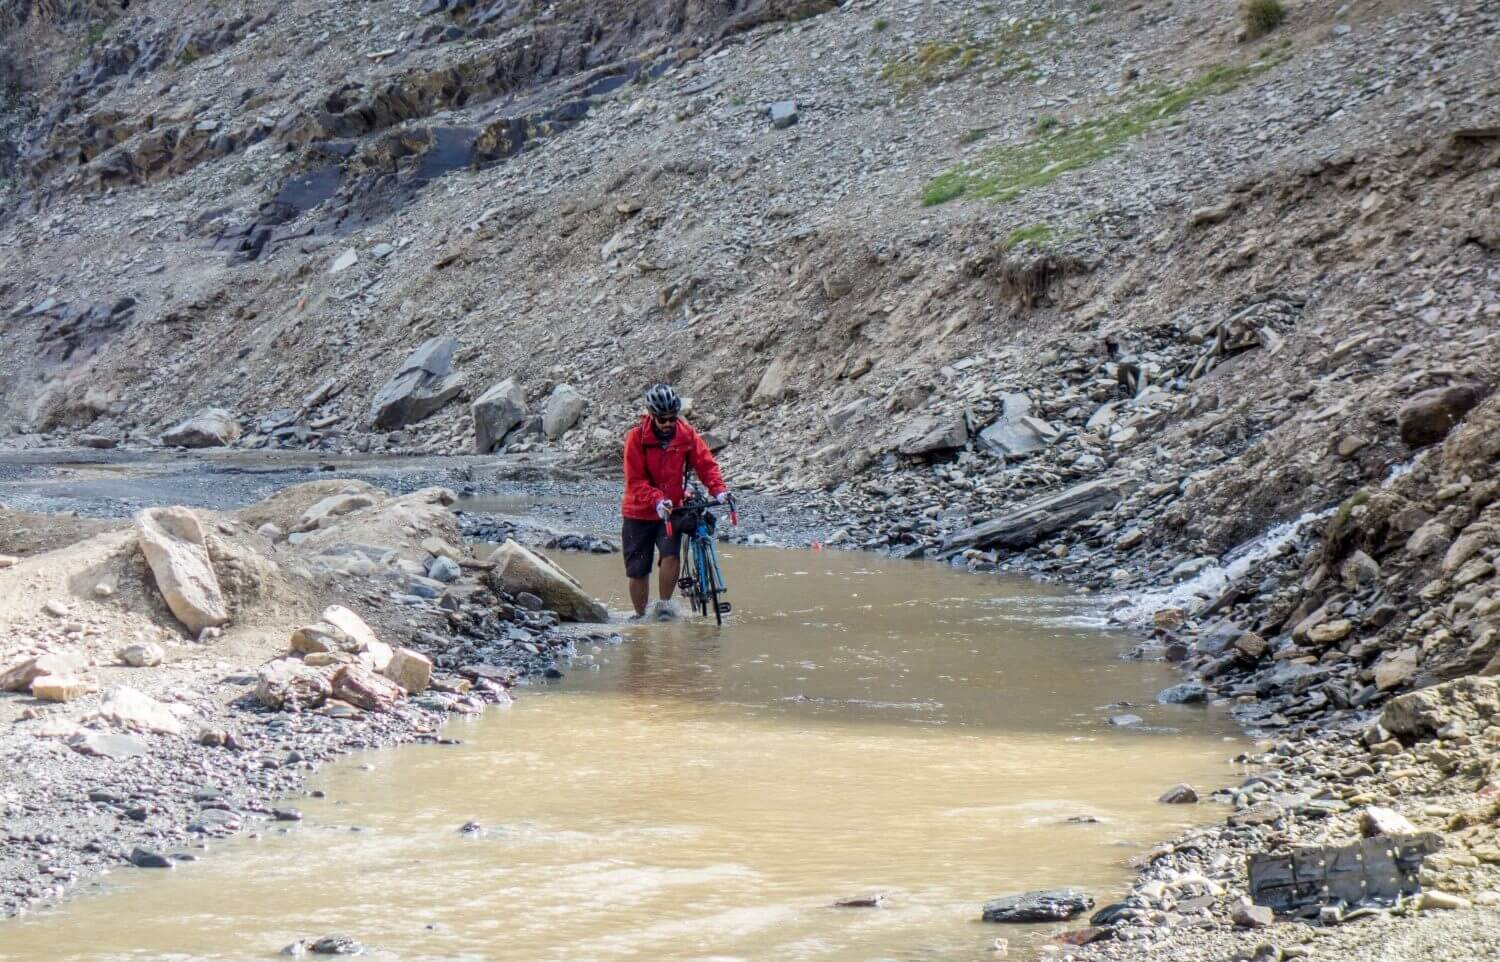 Streams on Manali-Leh highway